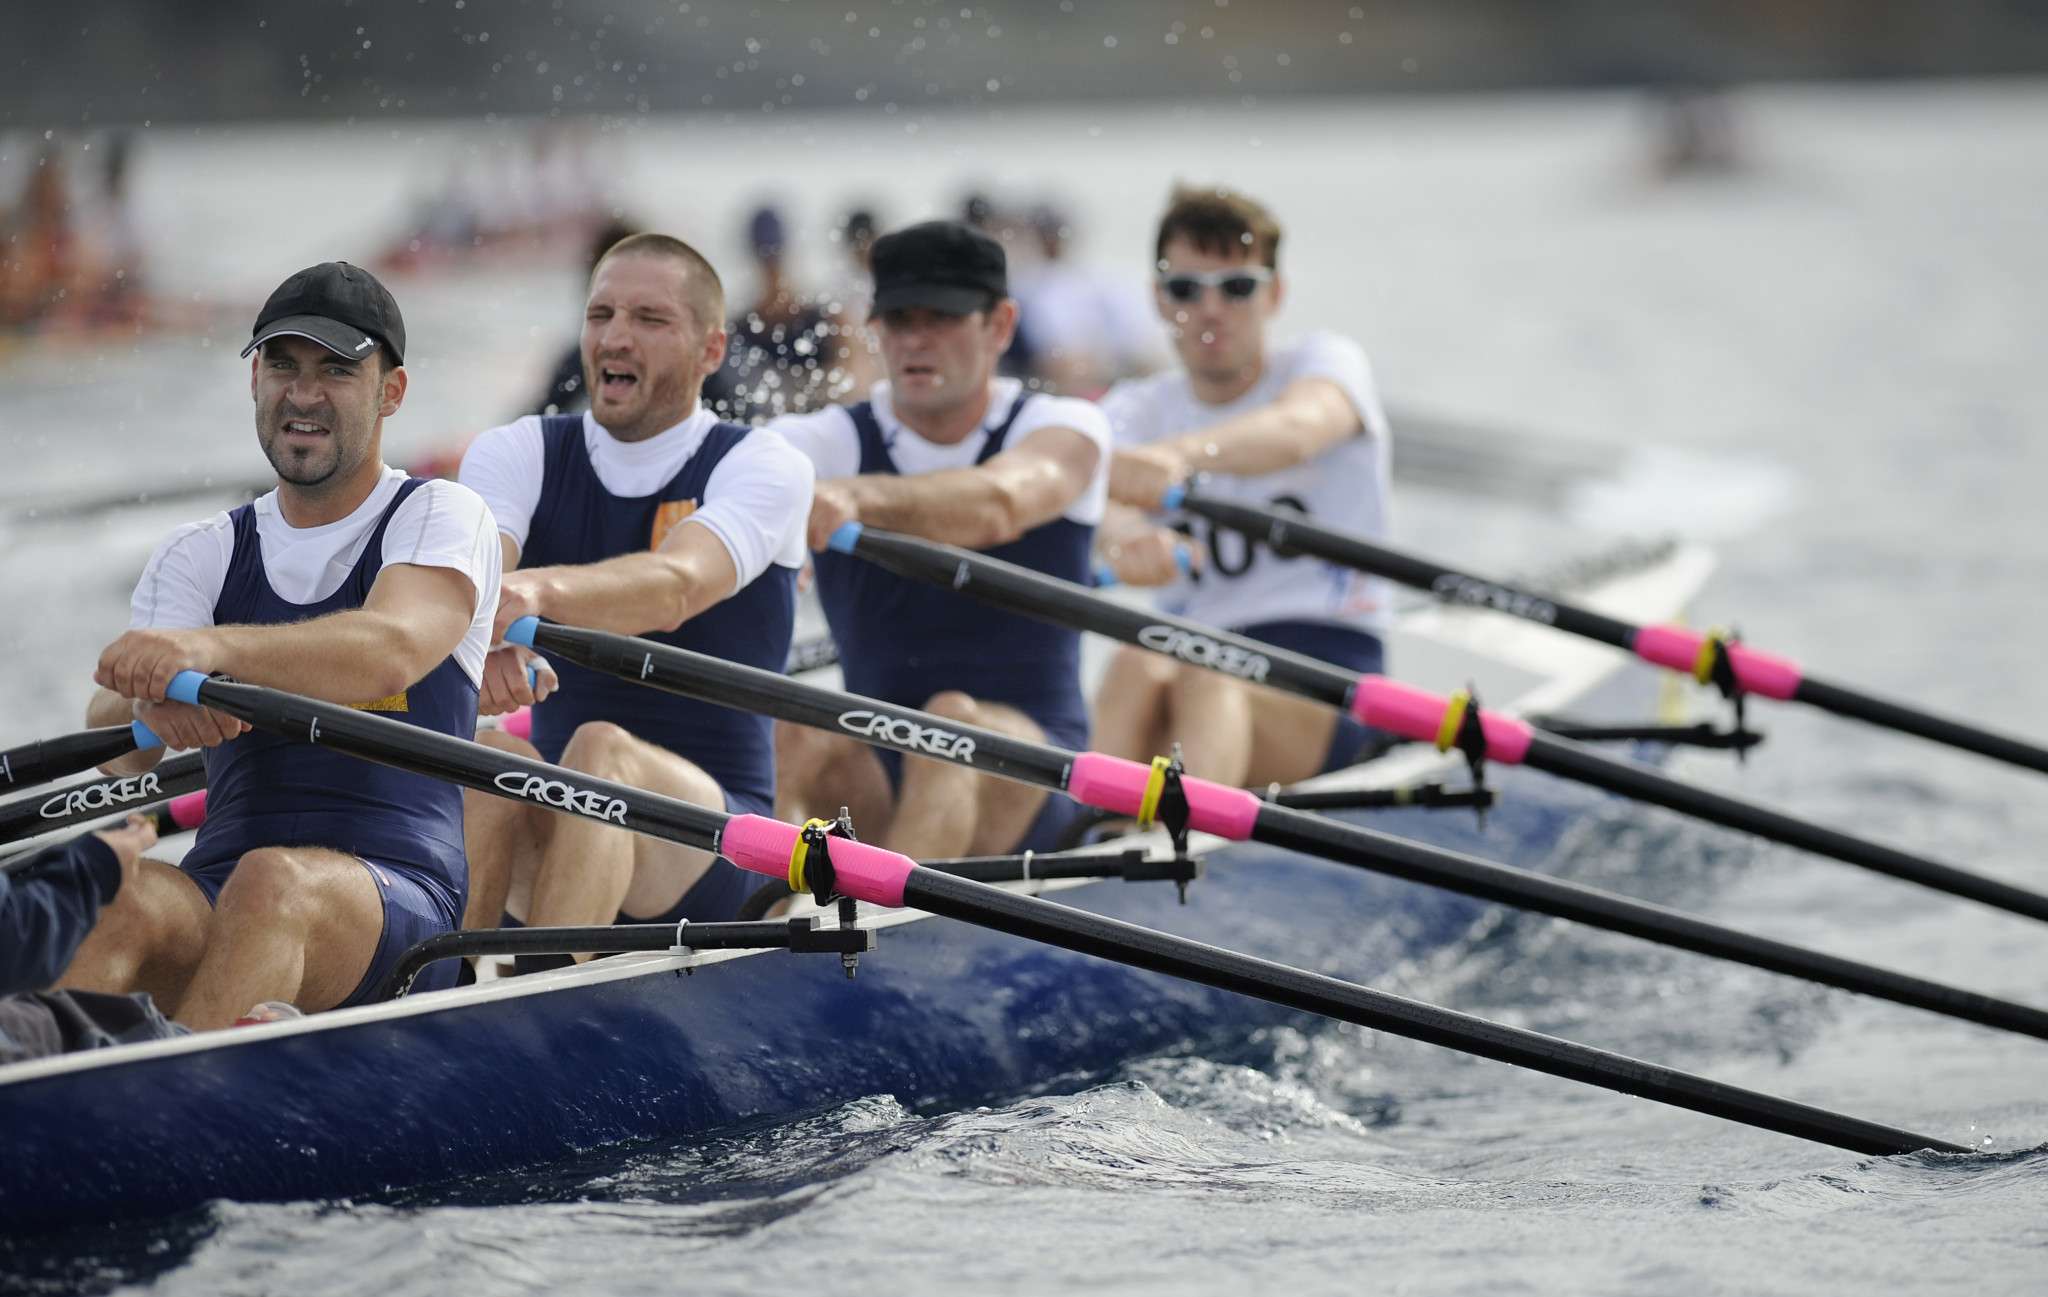 There are attempts underway to have coastal rowing added to the Paris 2024 Olympics ©Getty Images